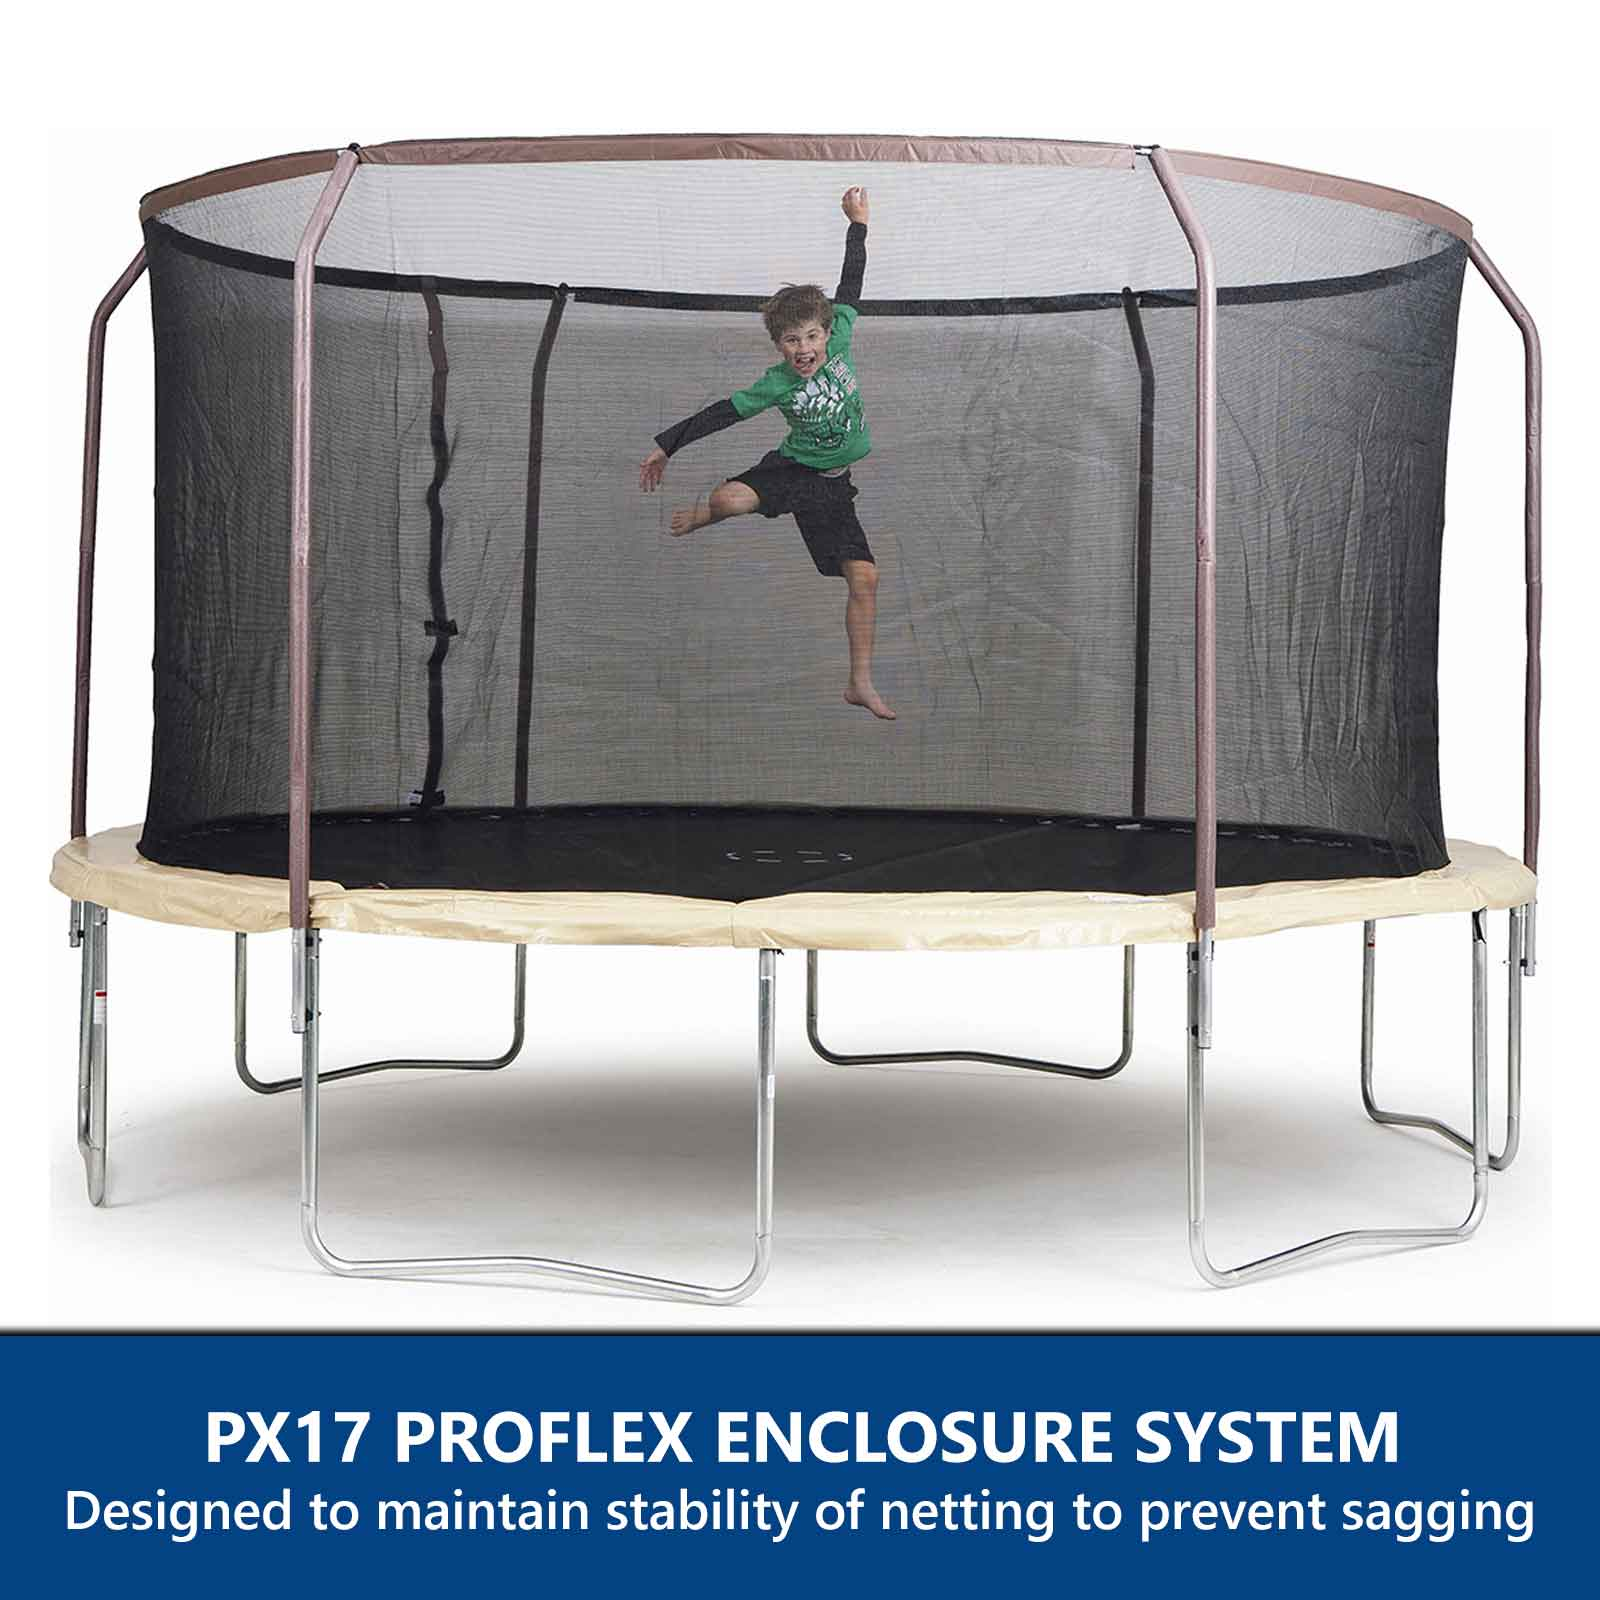 Airzone 14 Spring Trampoline And Enclosure Set: 14ft In-Ground Trampoline Steel Flex Pro Durable Enclosure